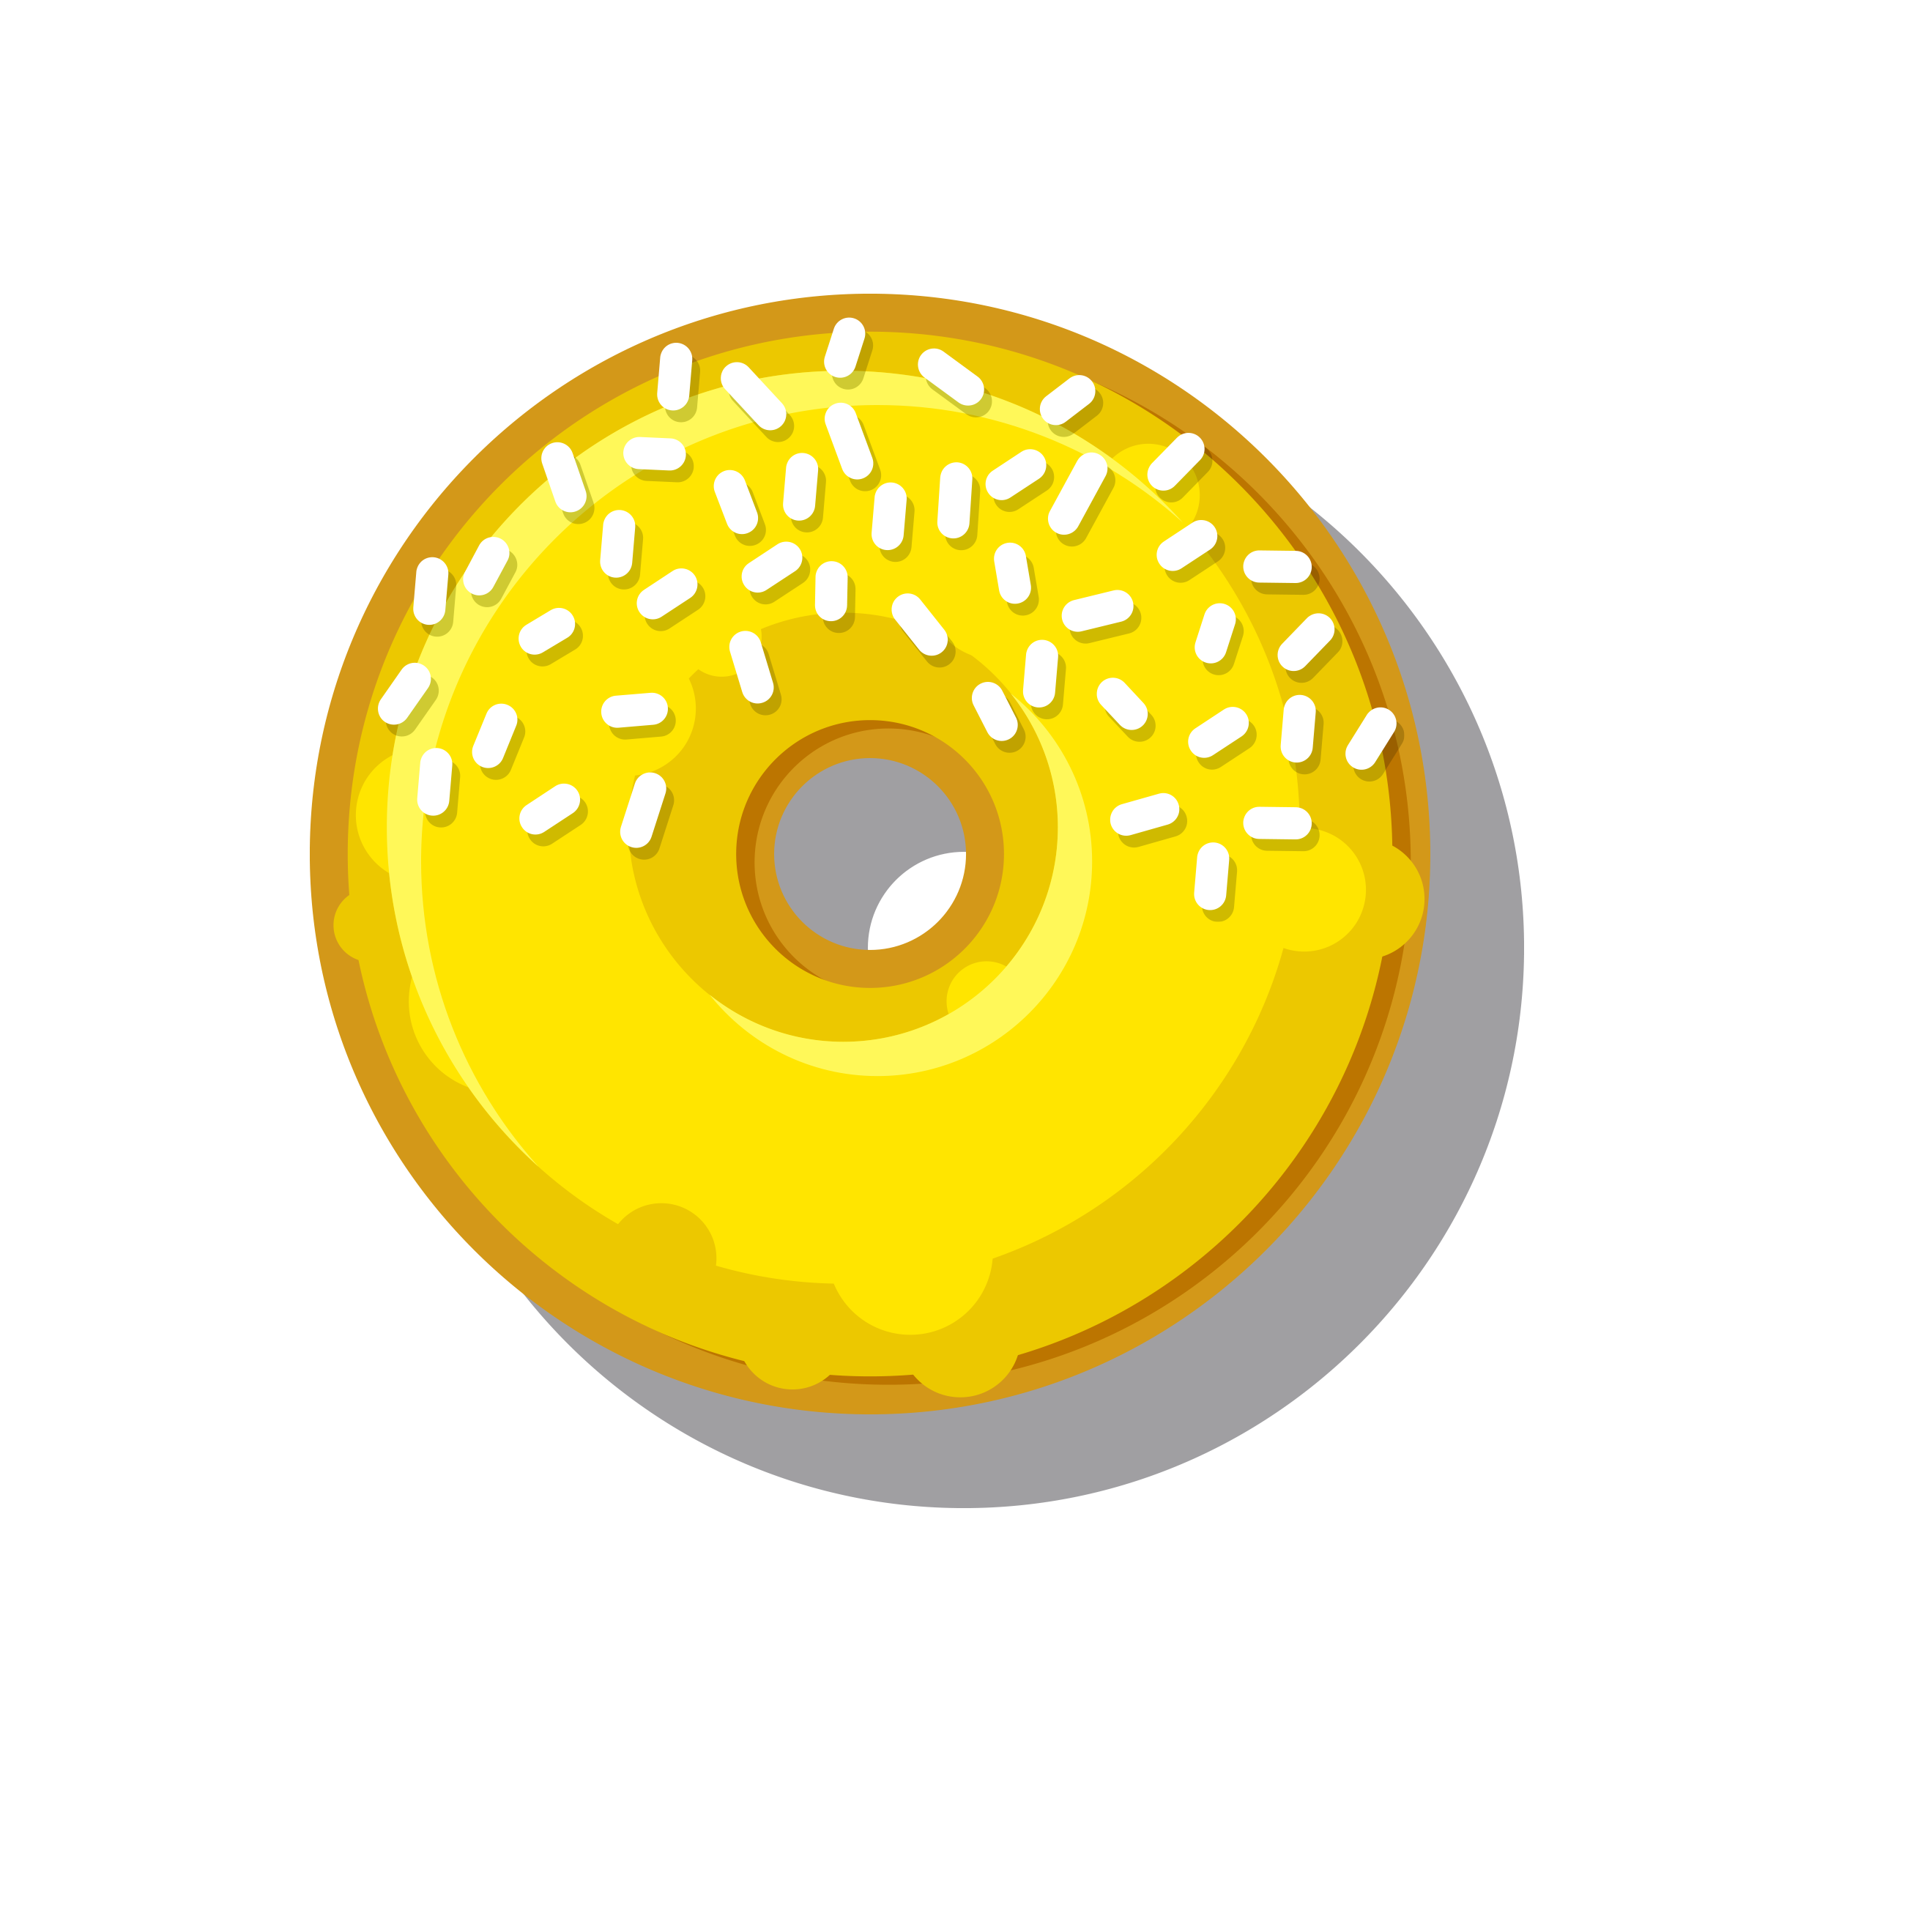 Donuts clipart green. Free photo yellow donut